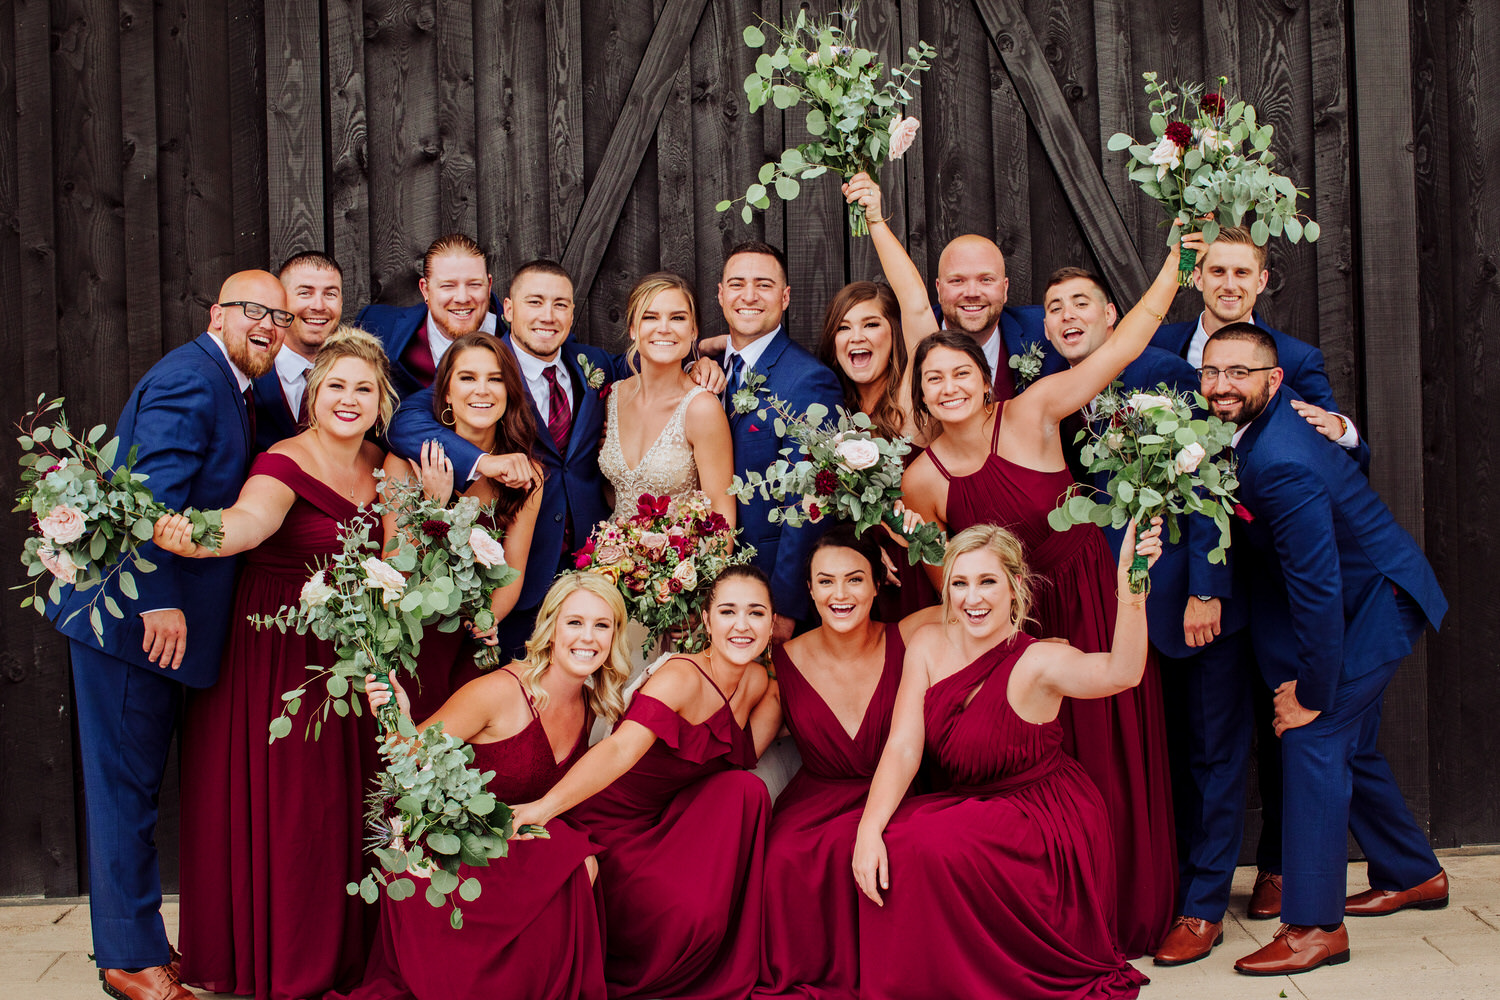 The Koon wedding took place in Bozeman Montana. A party this fun made it that much easier to photograph